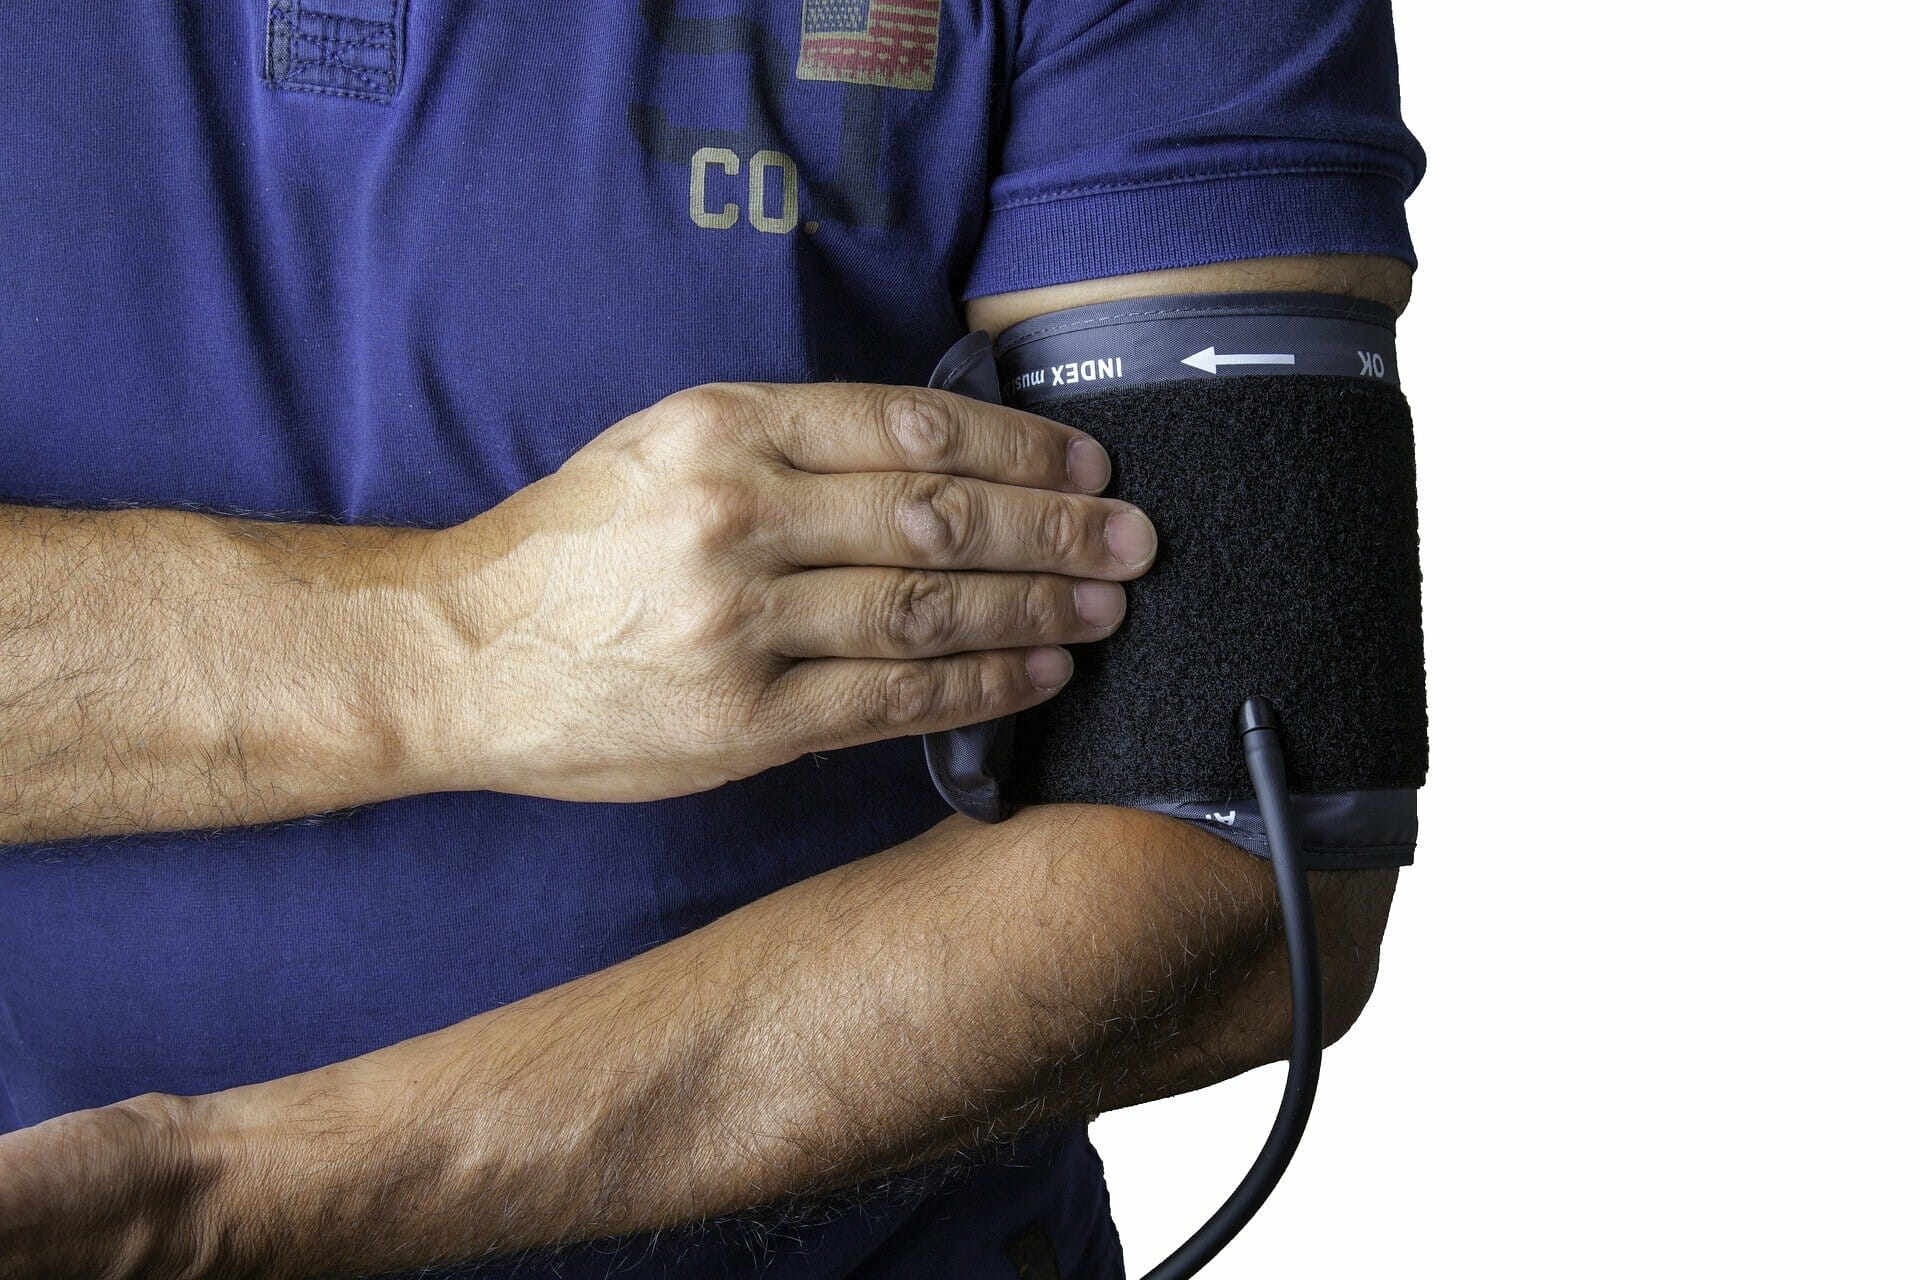 Blood pressure device strapped on person's arm